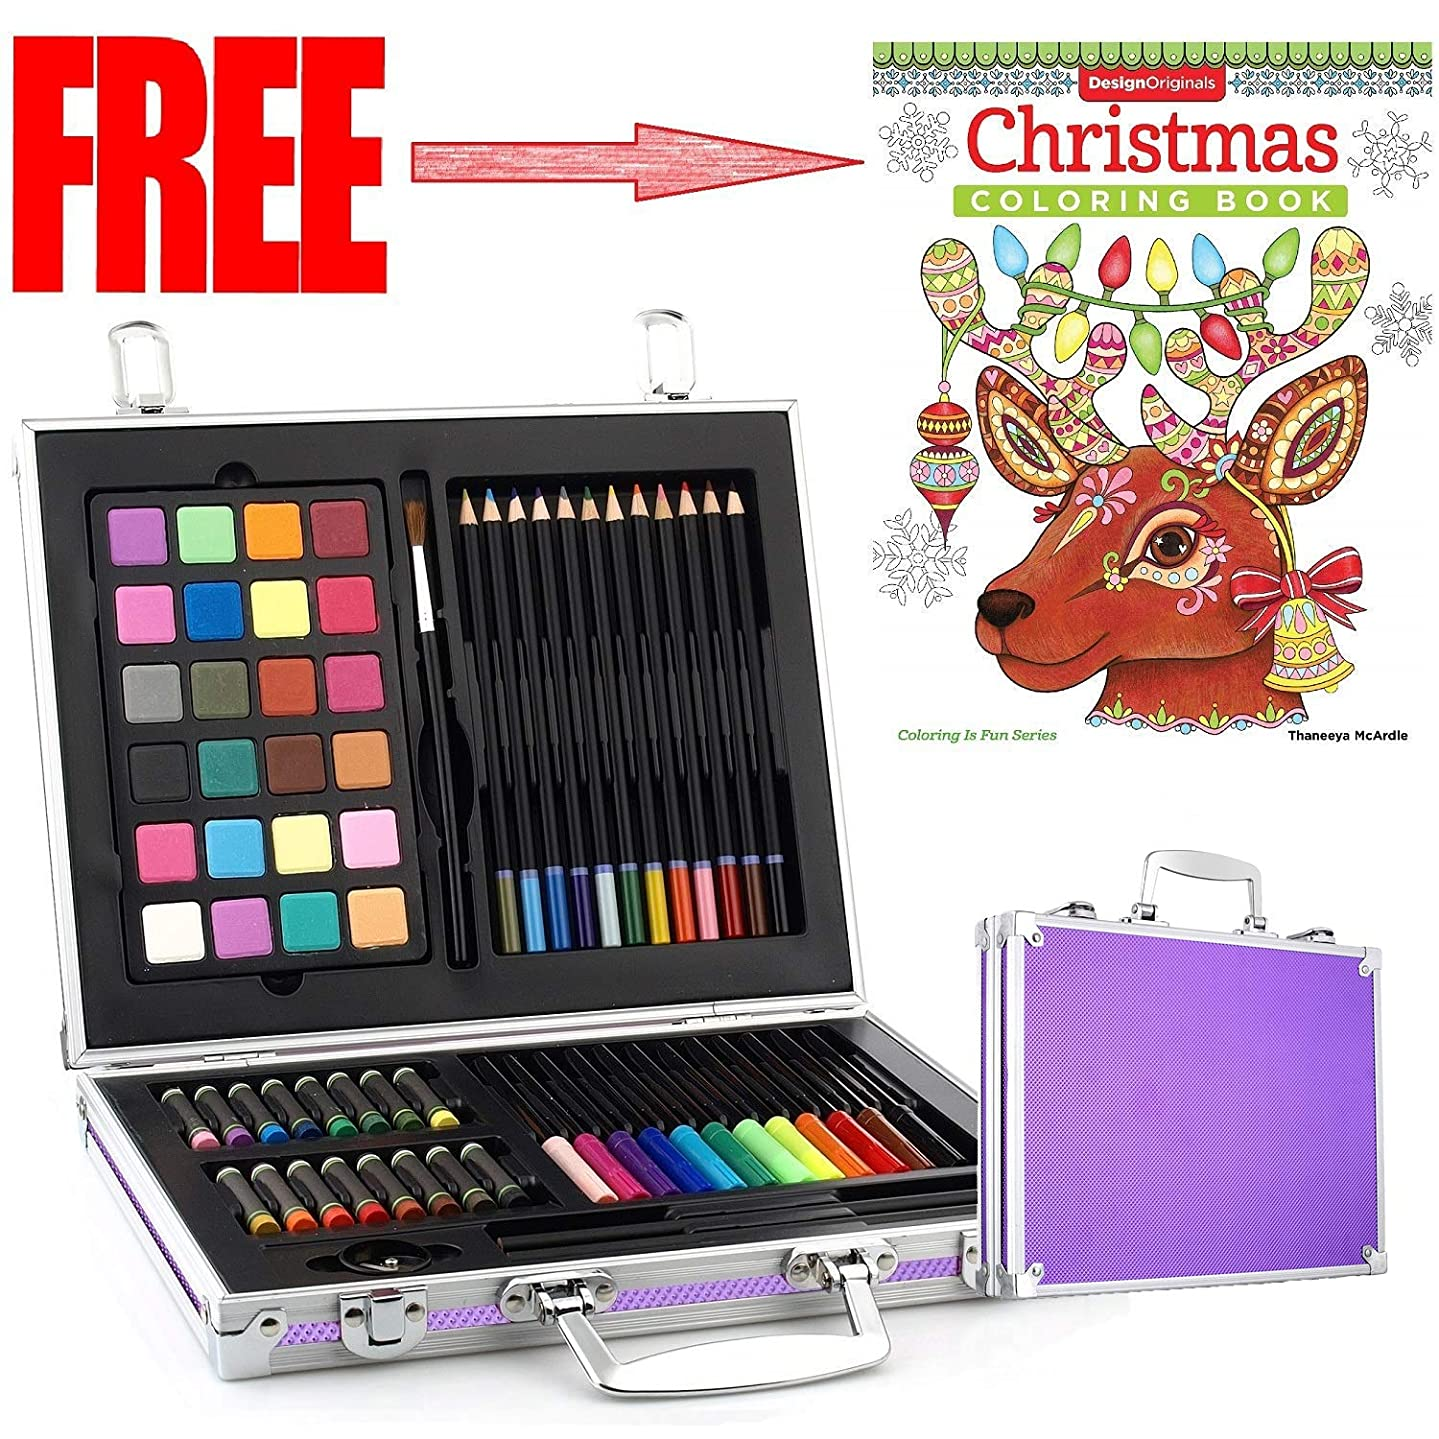 Gallery Studio - 69 Piece Deluxe Art Supplies Set in Purple Aluminum Case - (Quality Mediums Guaranteed)